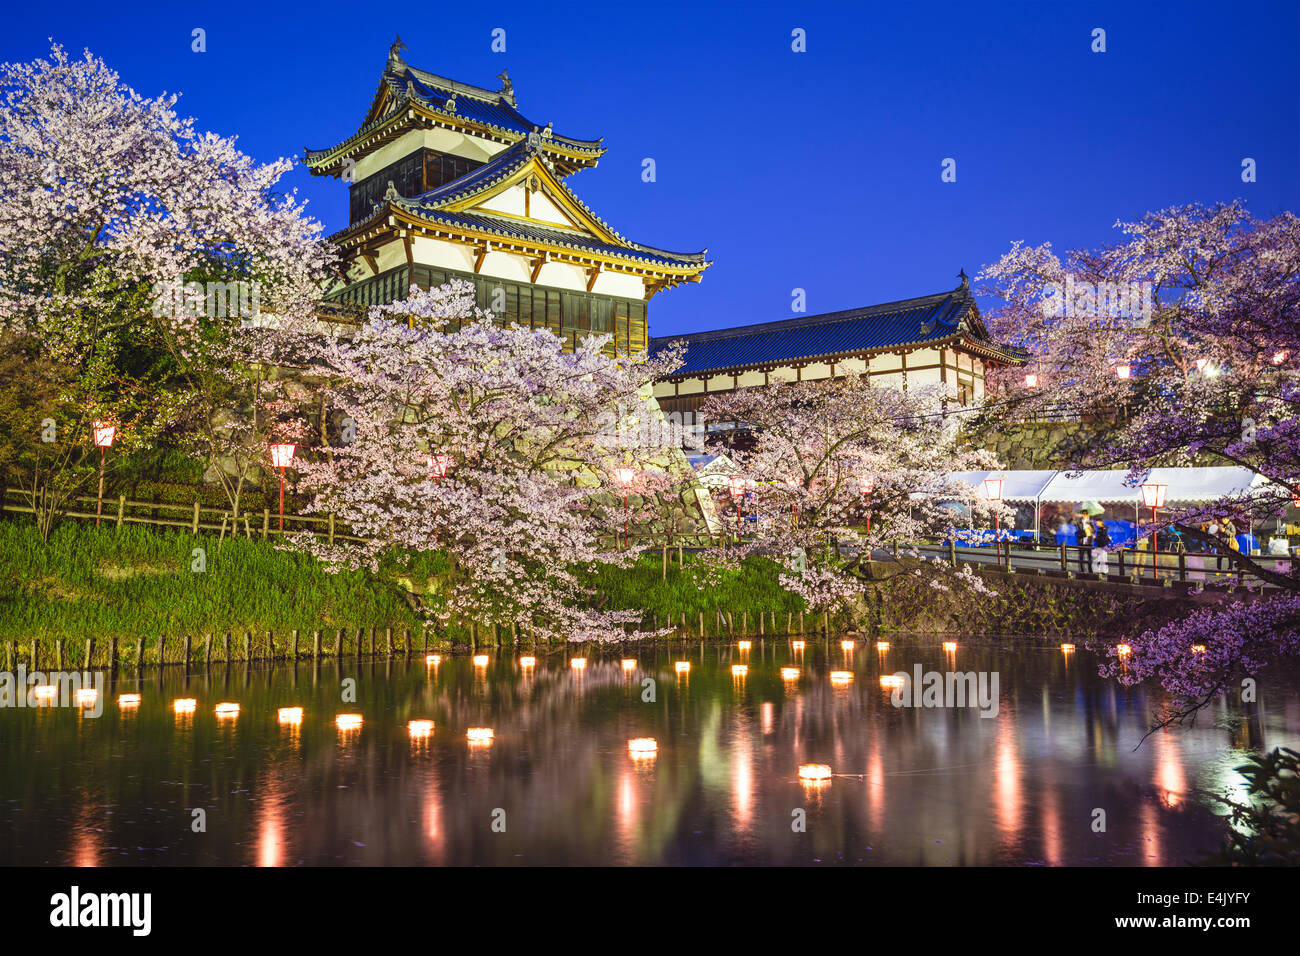 Koriyama Castle in Nara, Japan. - Stock Image